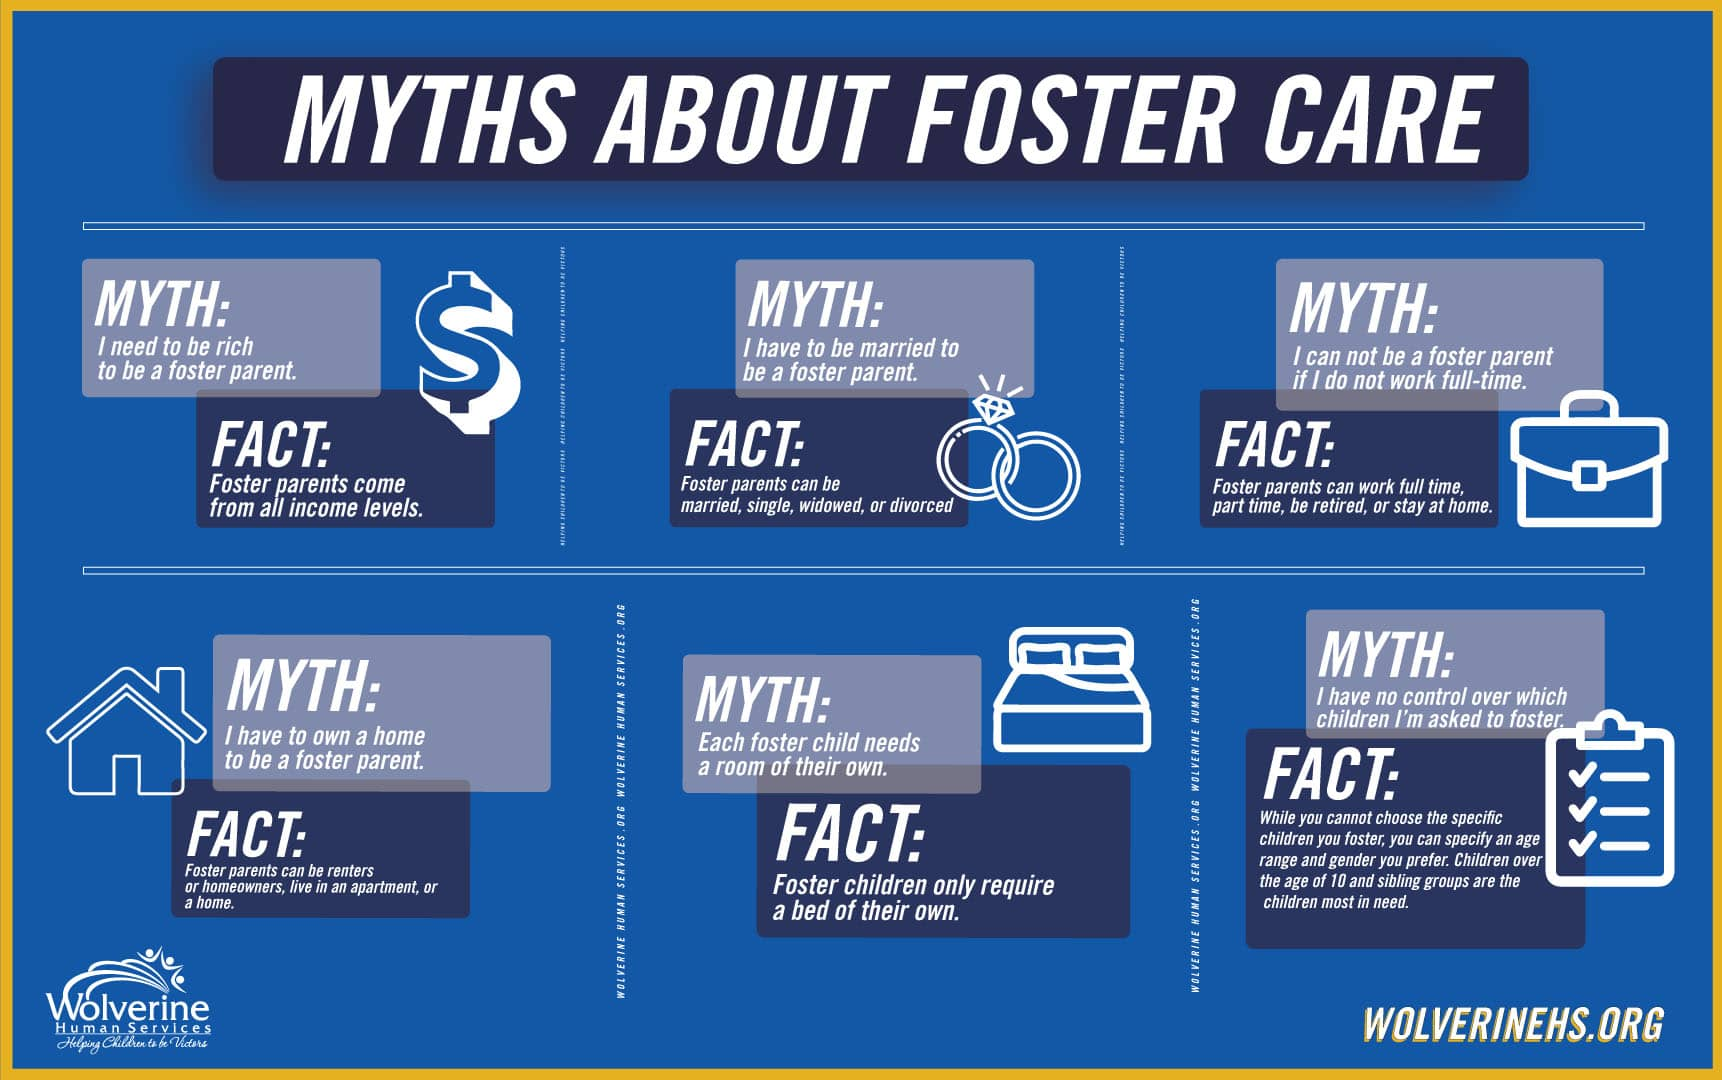 Myths About Foster Care